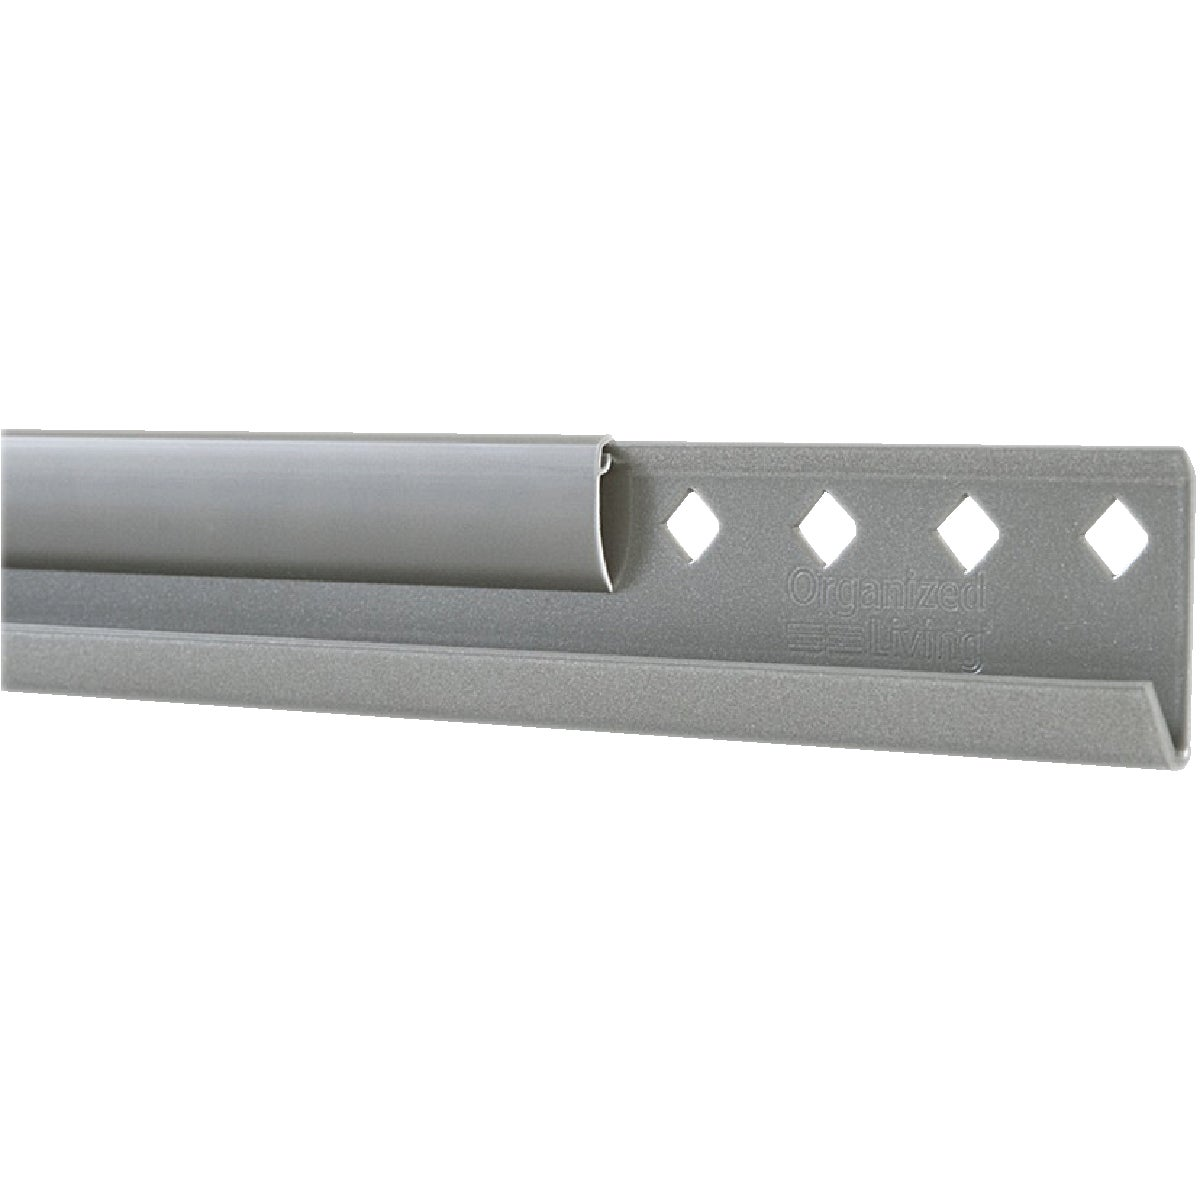 "40"" NICKEL HANGING RAIL"